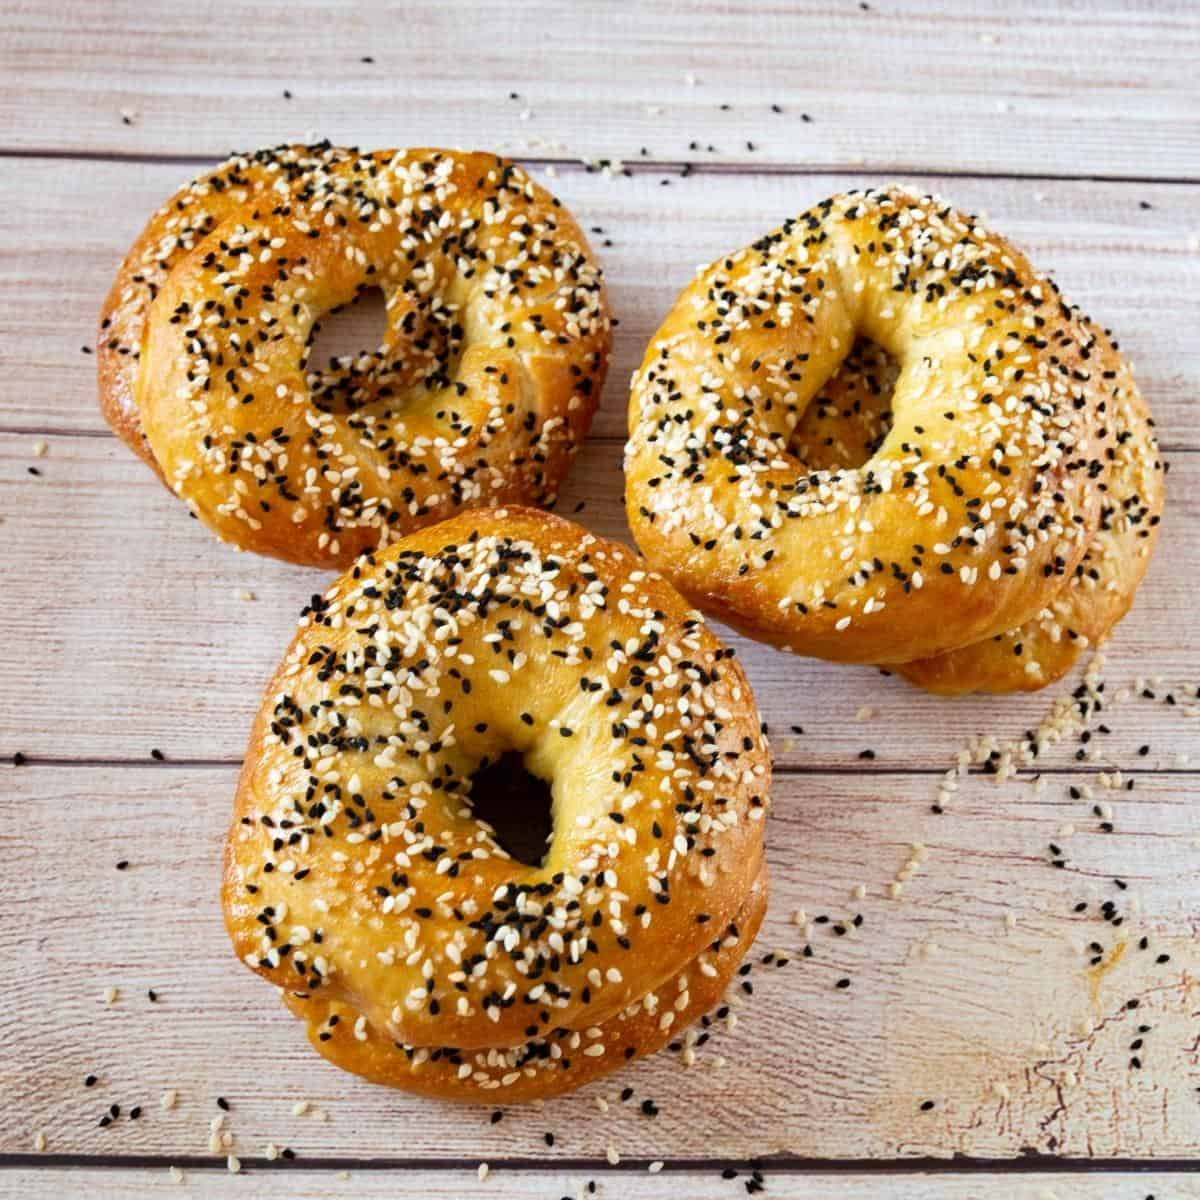 Bagels on a table.